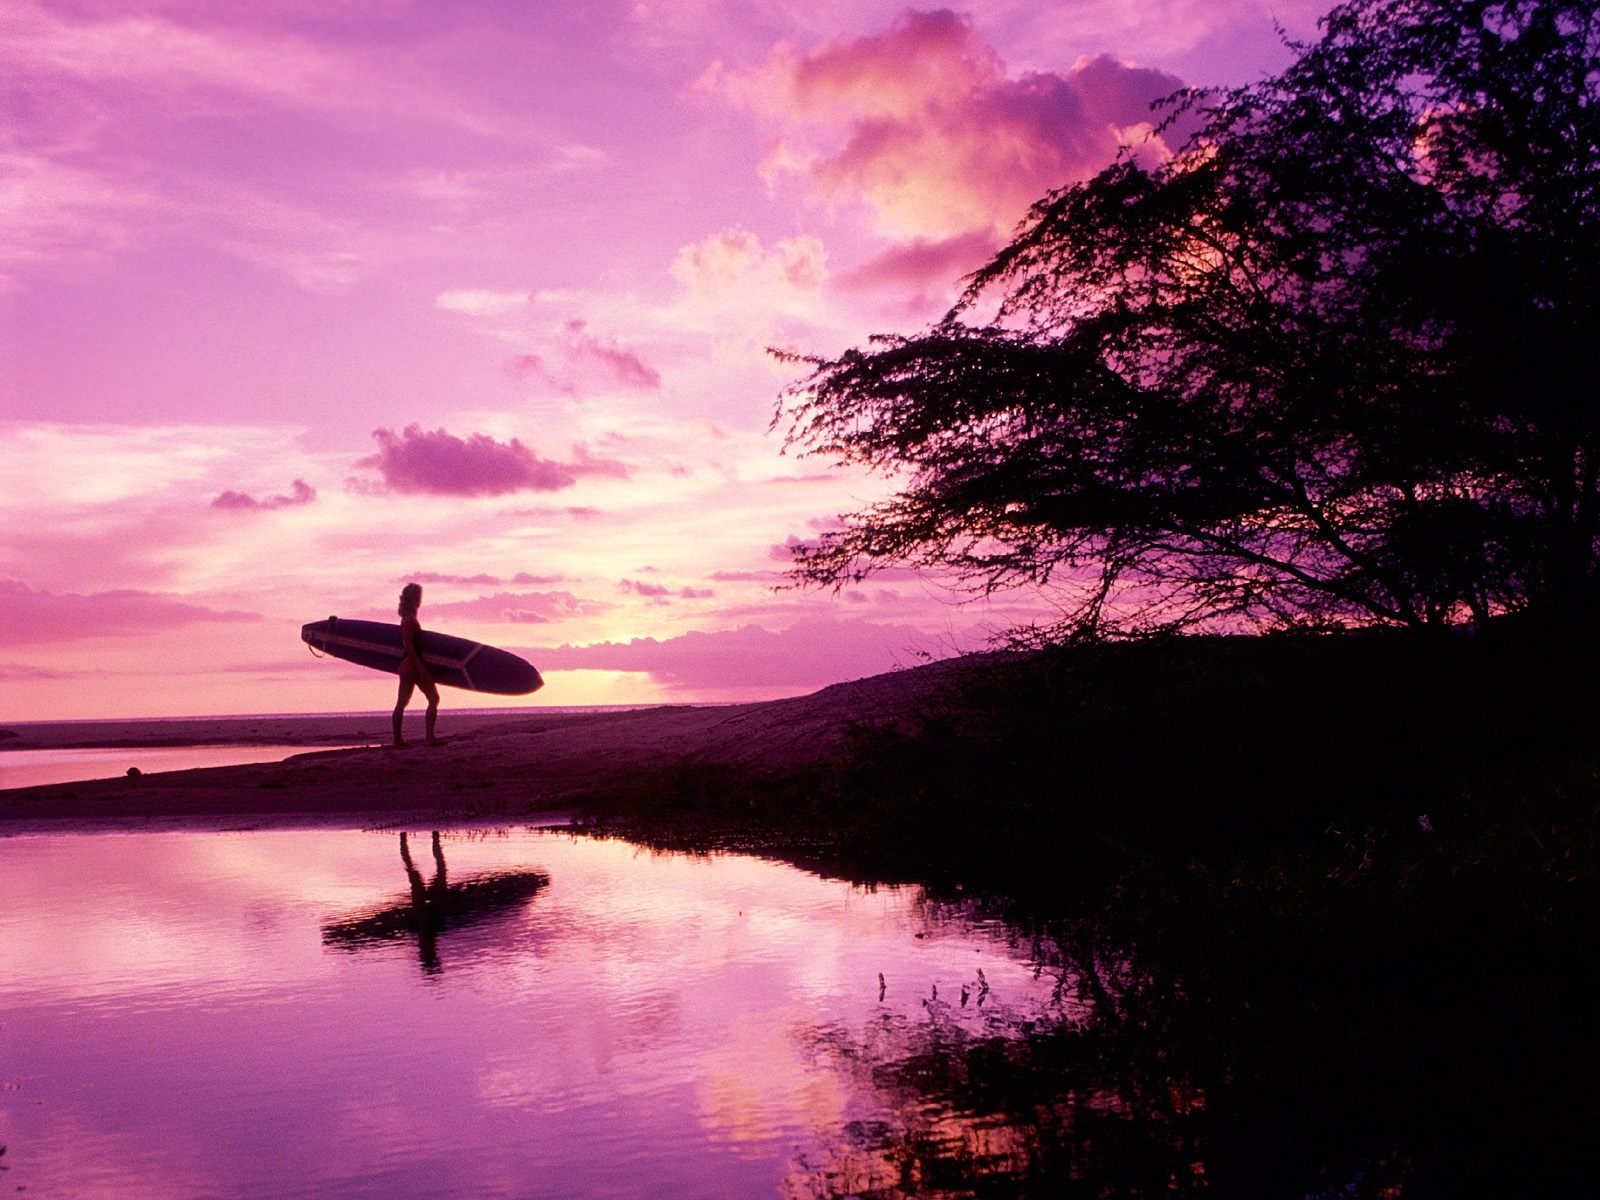 Best Surfing Wallpaper   Wallpaper High Definition High Quality 1600x1200